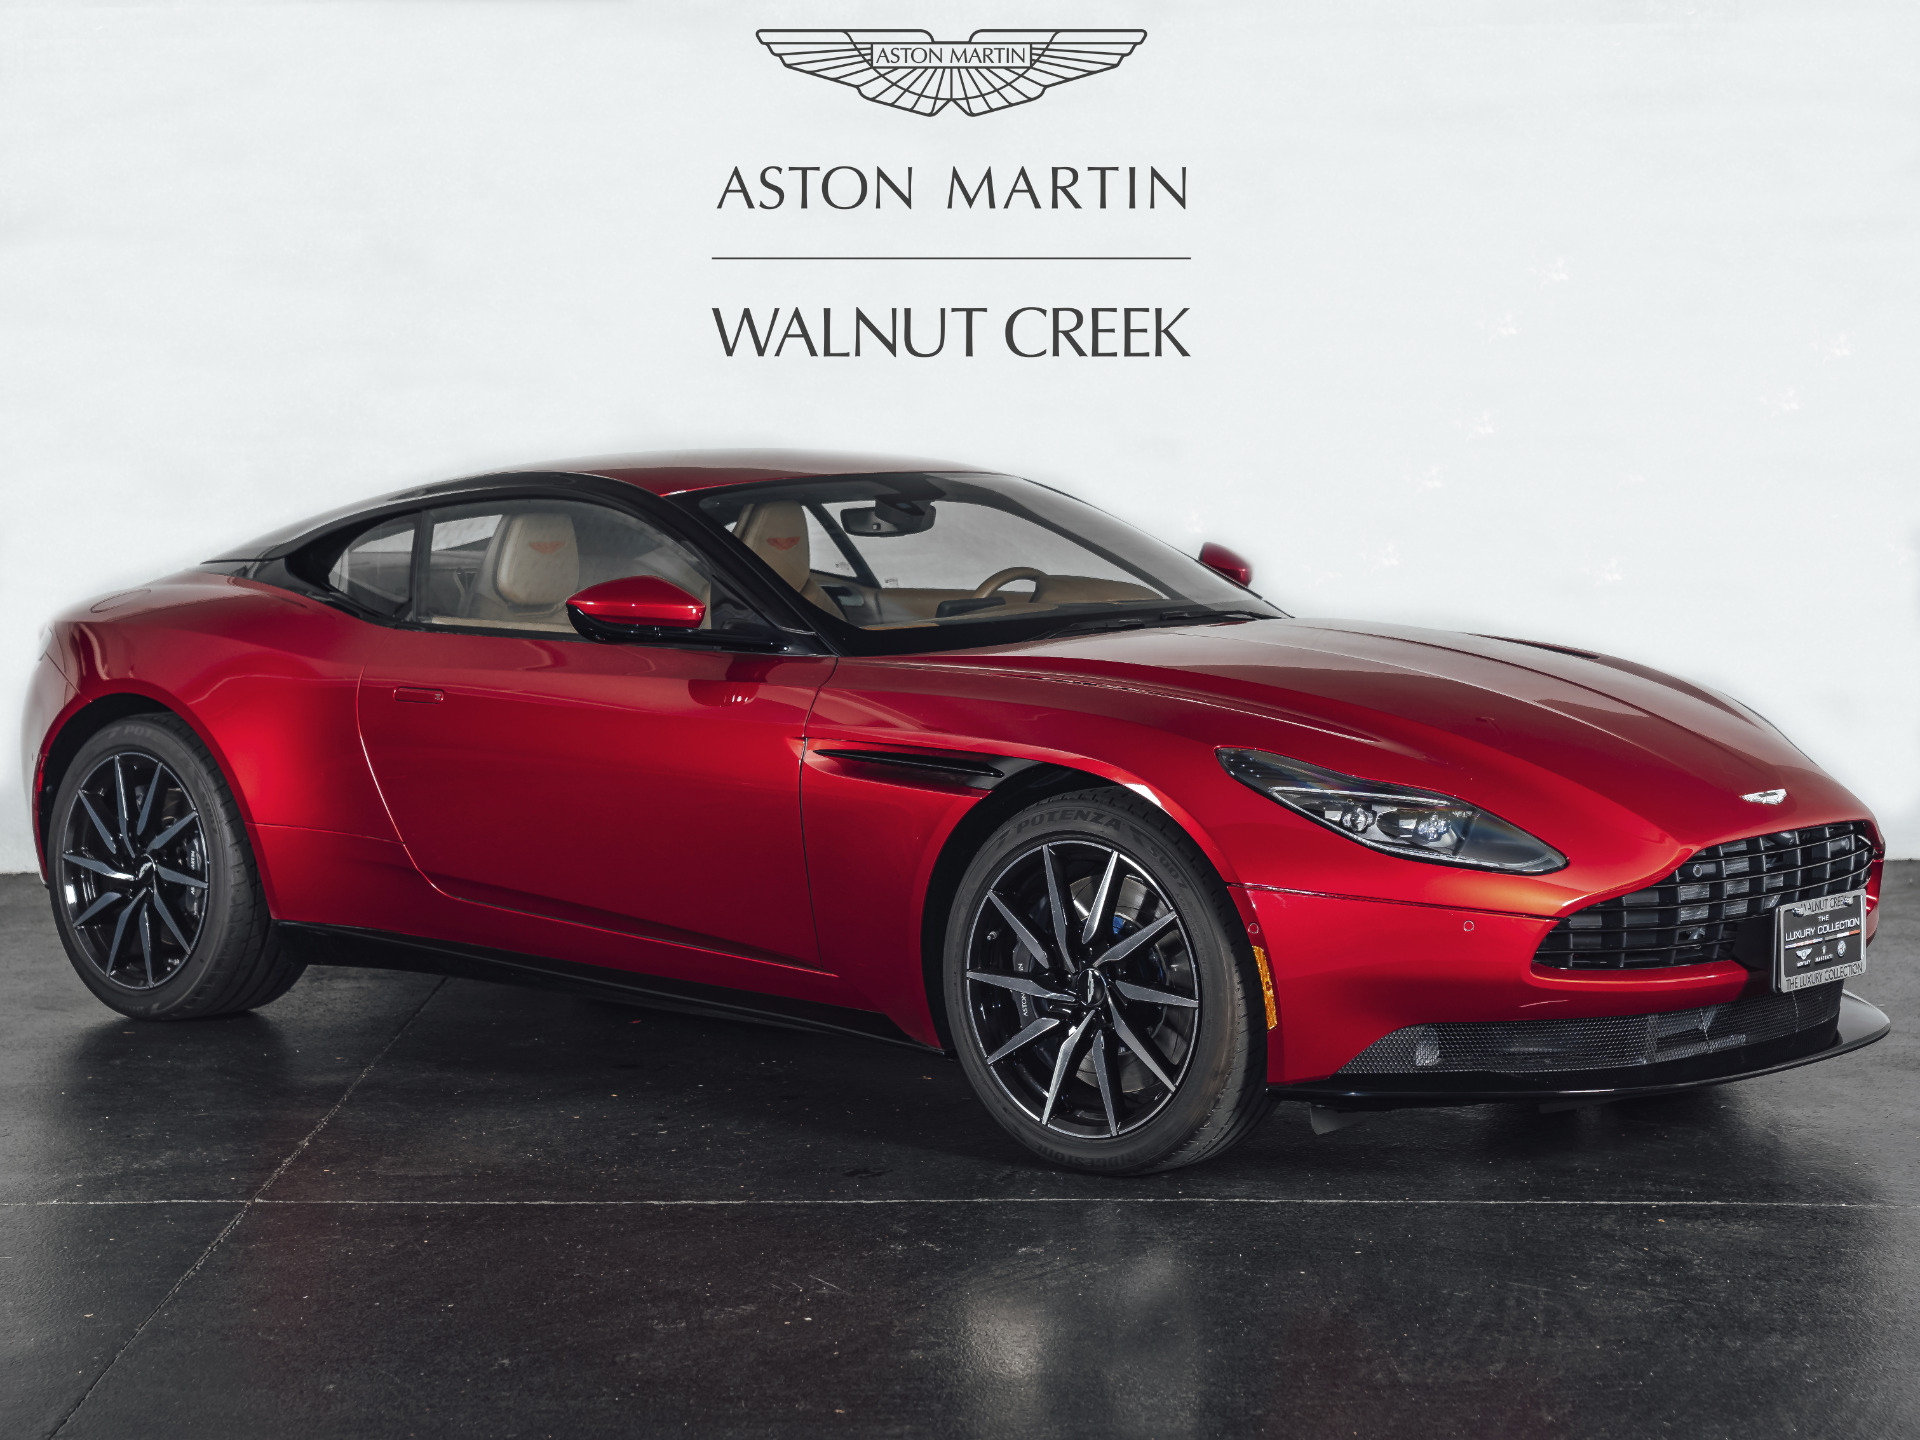 New 2020 Aston Martin Db11 V8 Coupe For Sale 244 026 The Luxury Collection Walnut Creek Stock Aml022